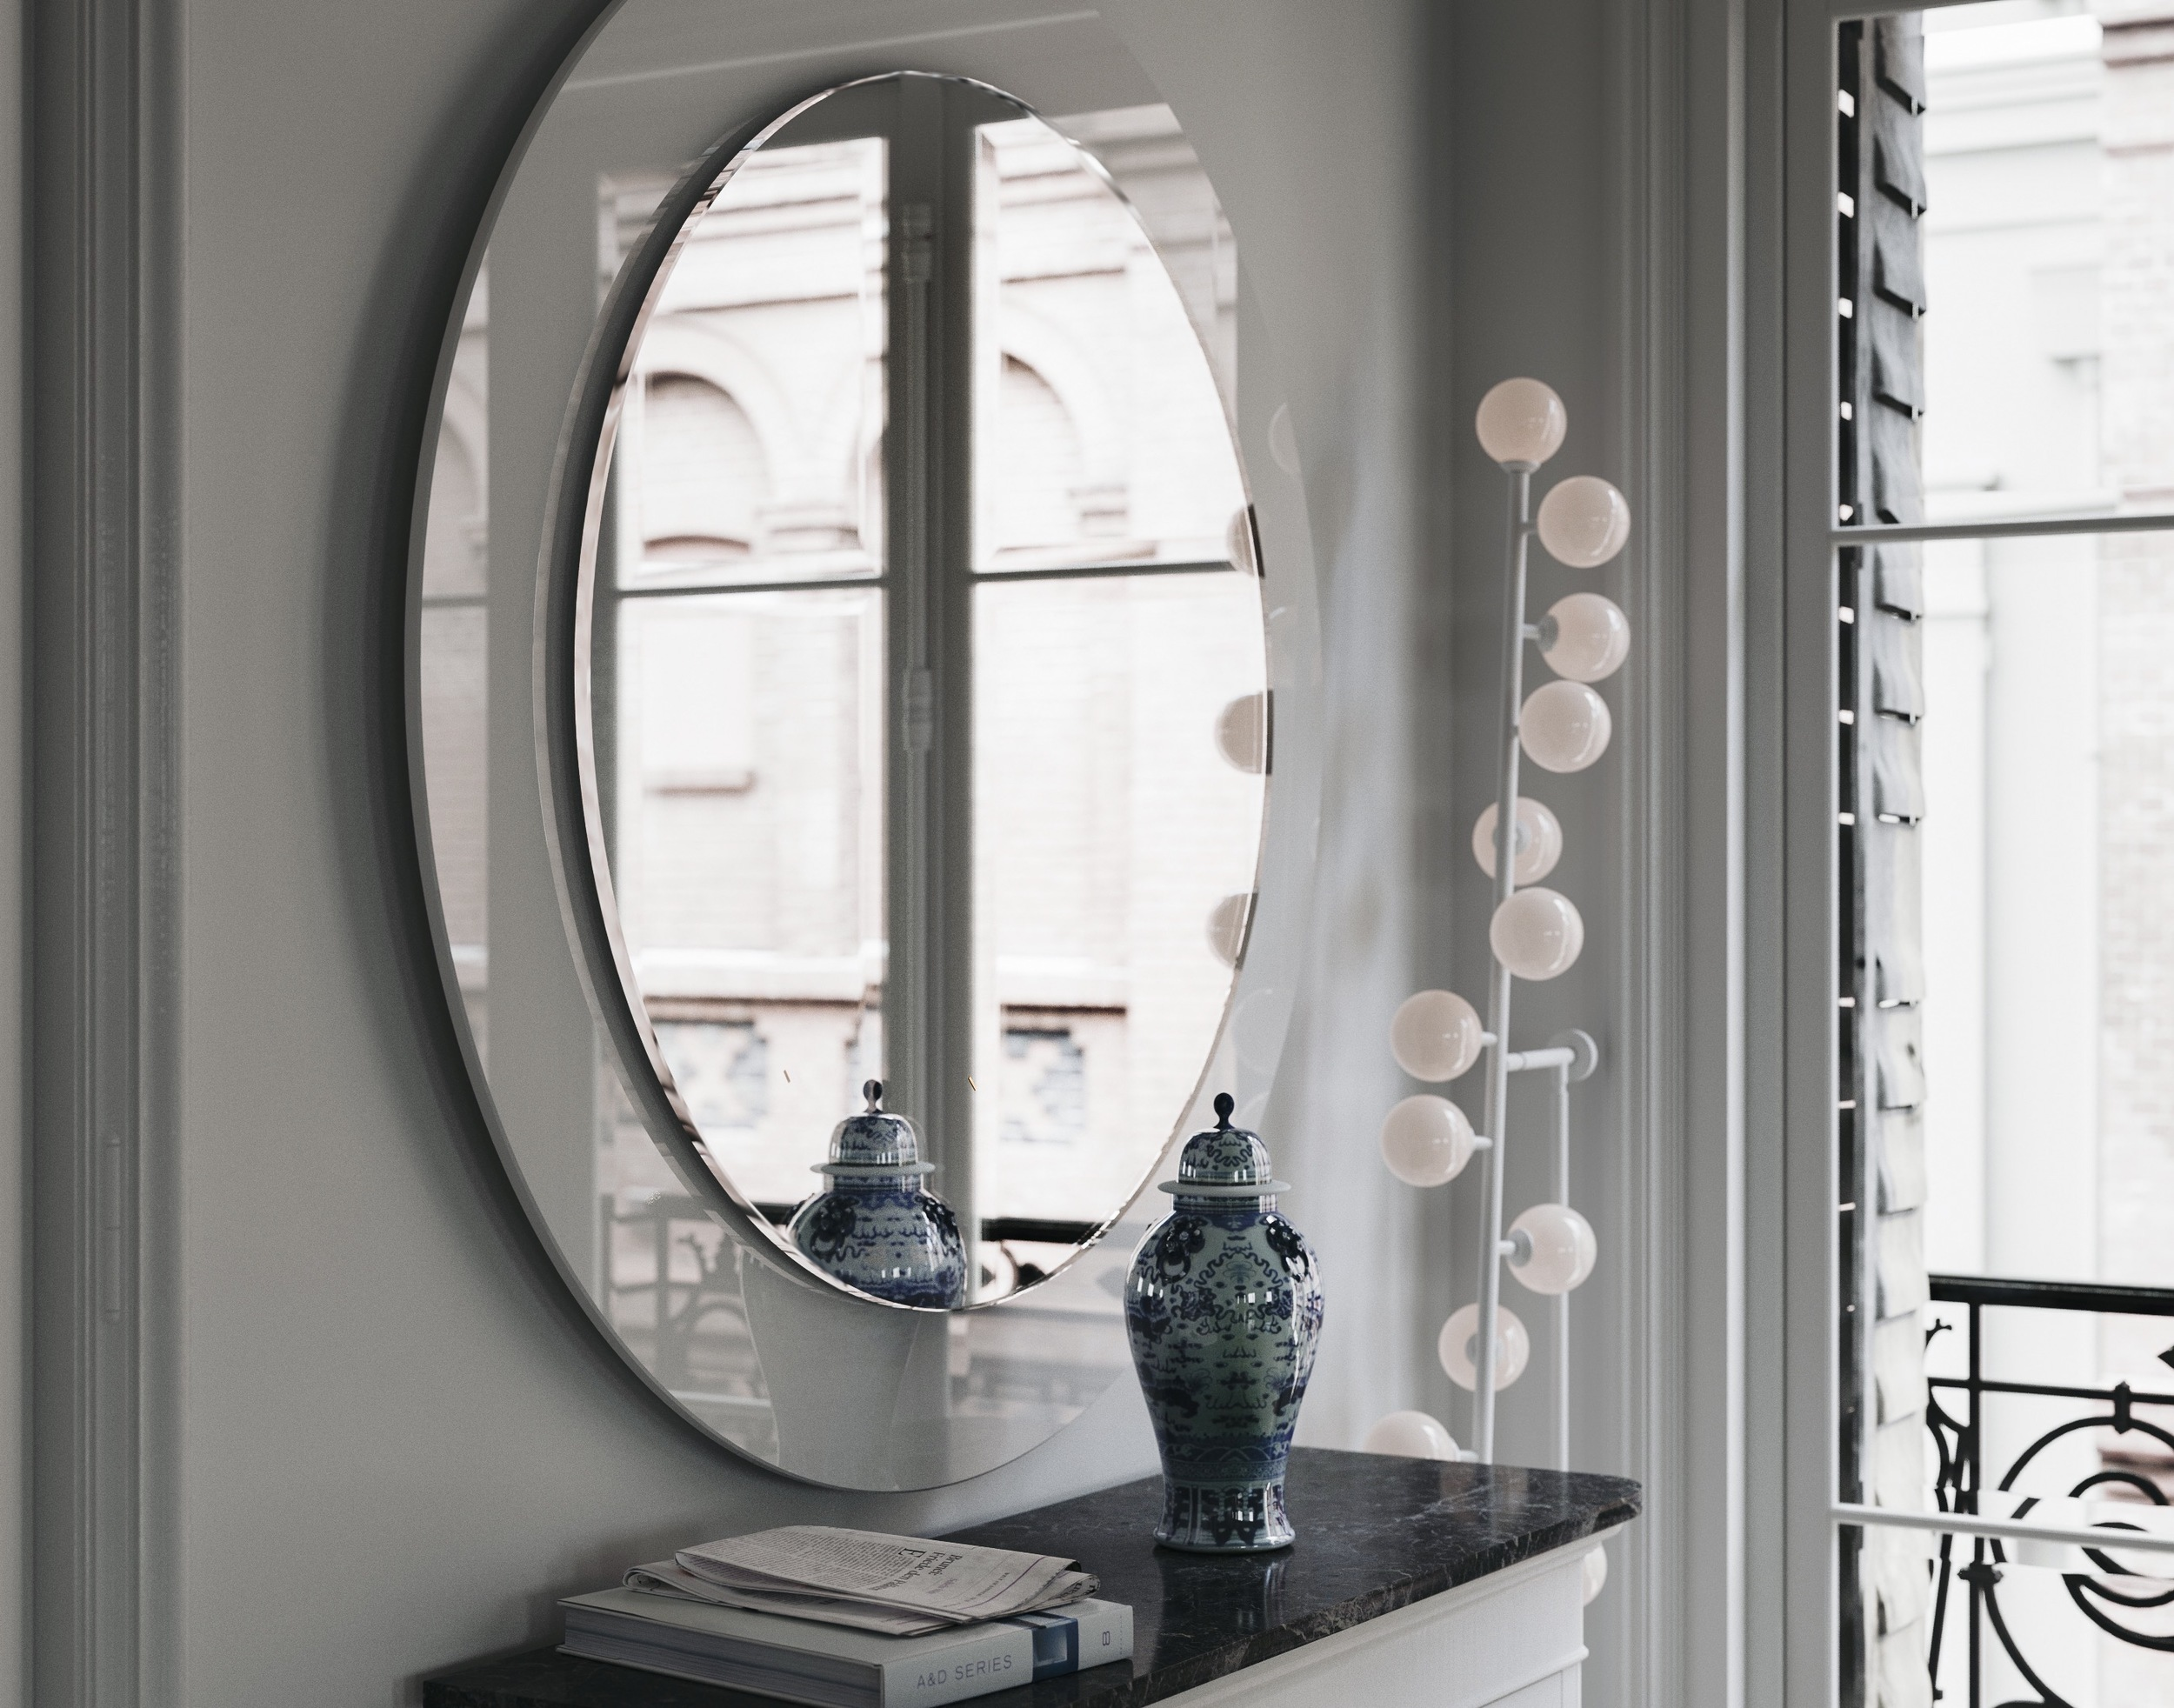 Same mirror photographed from the side